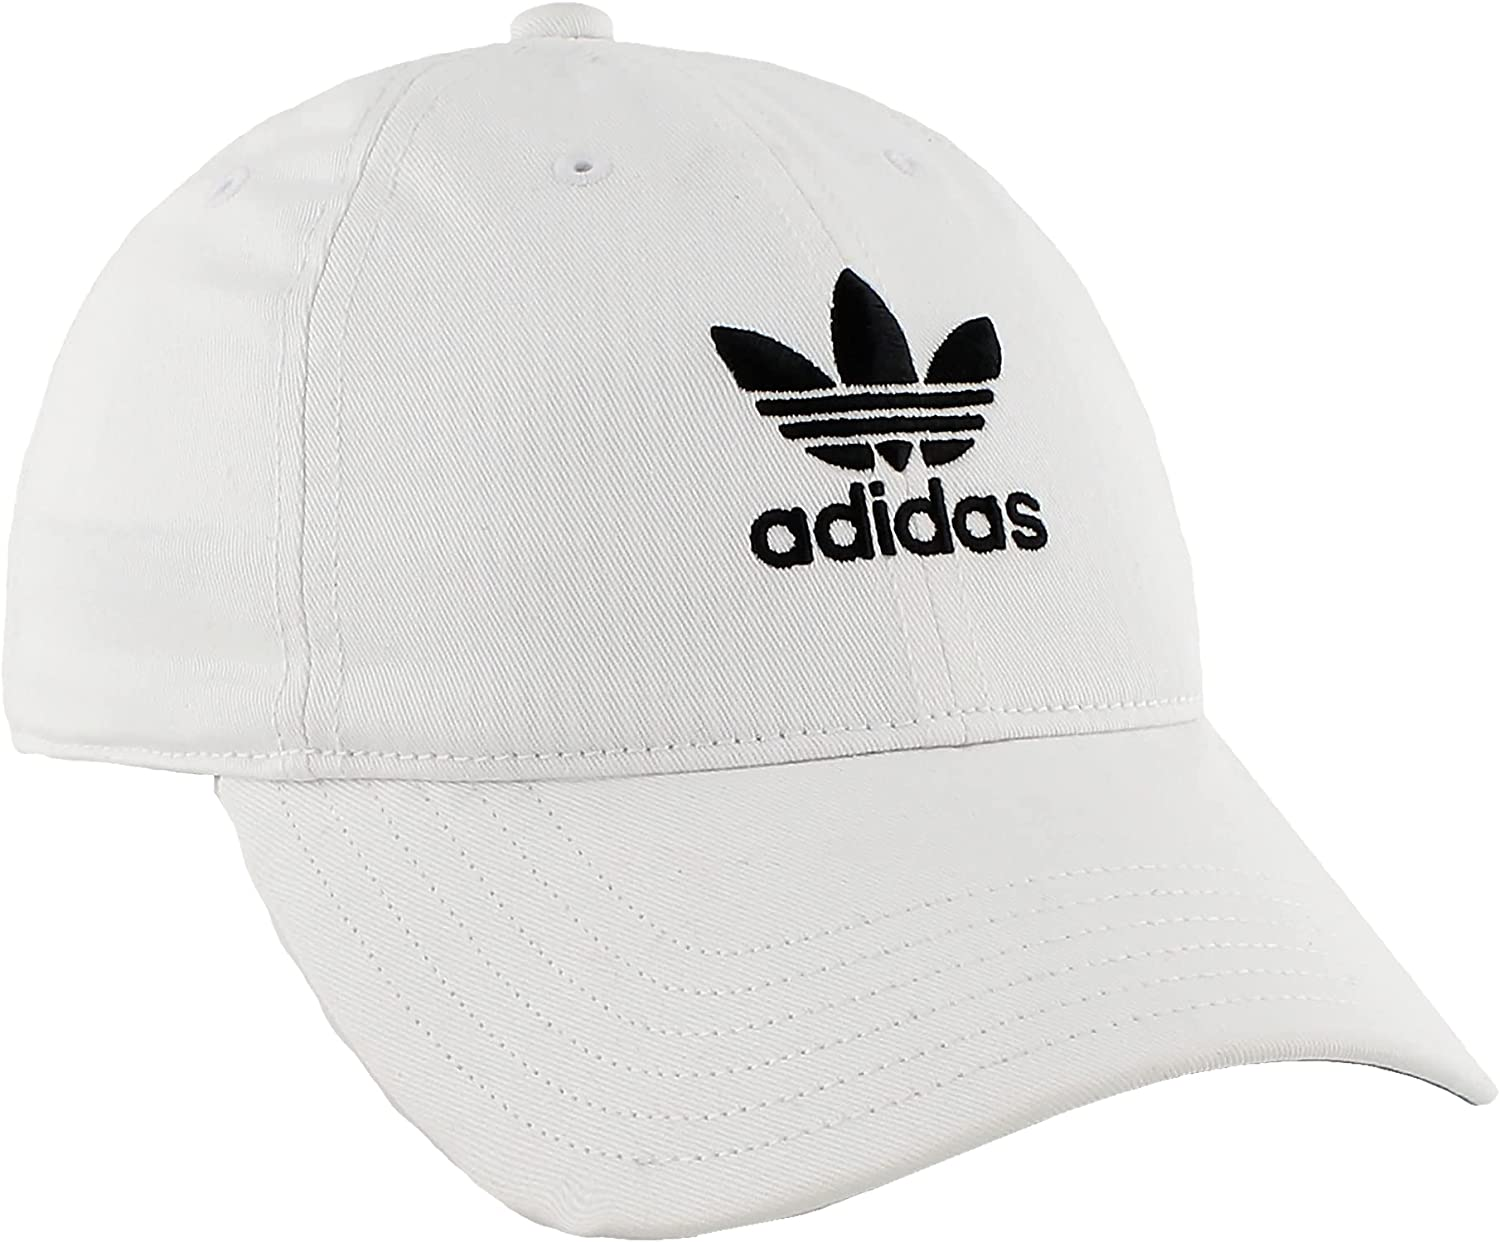 adidas 5 popular Men's Metal Logo 2 Strapback Relaxed Cap Fit All stores are sold